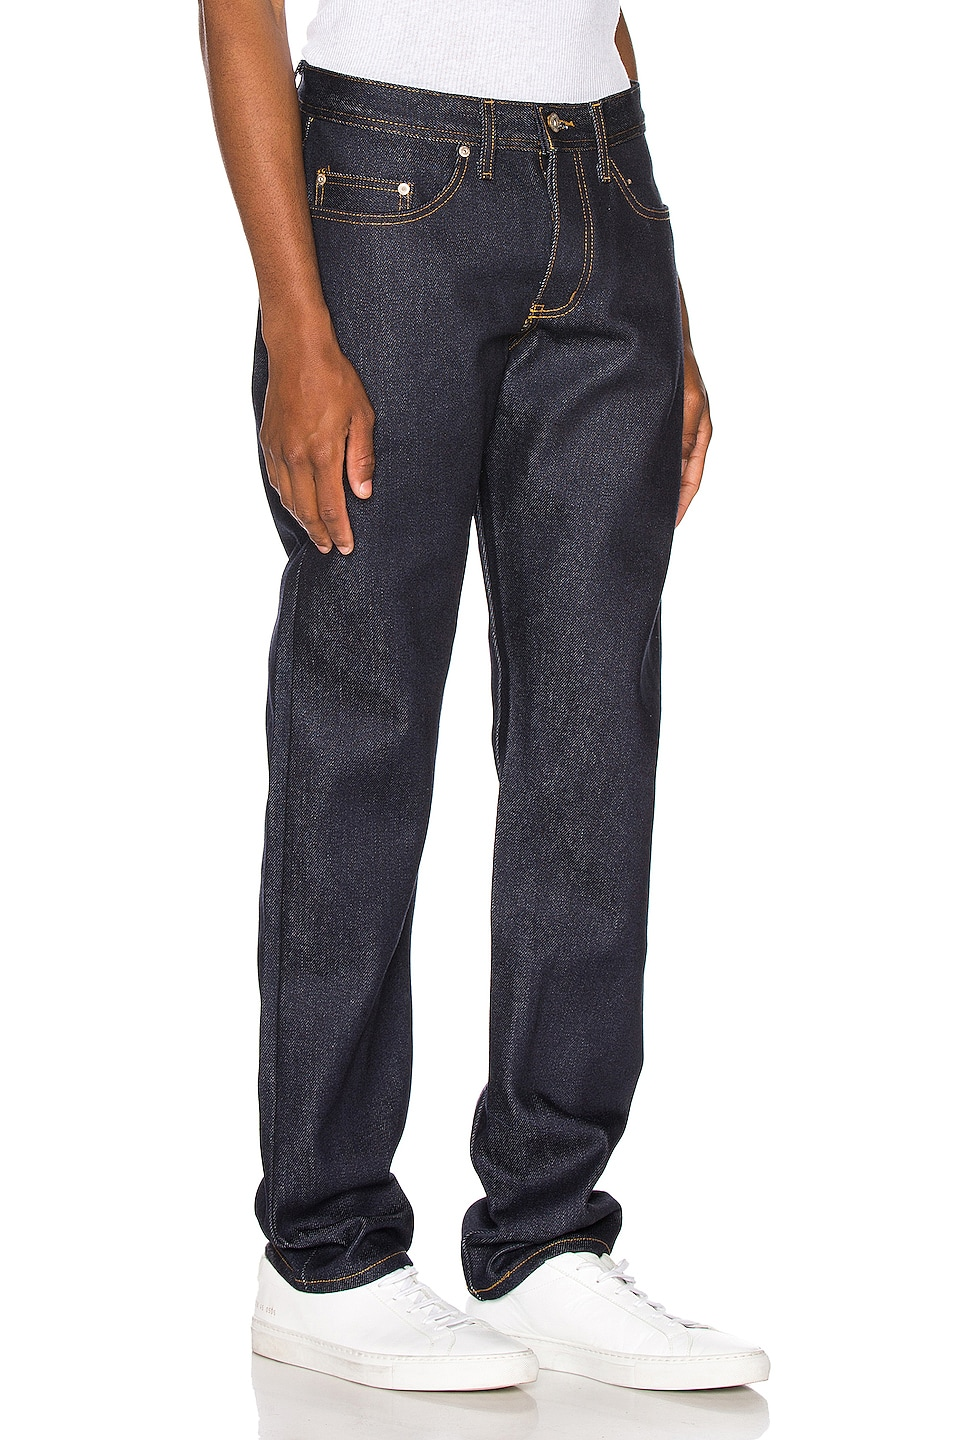 Image 2 of Naked & Famous Denim Weird Guy Jeans in Elephant 8 Supima Soft Selvedge